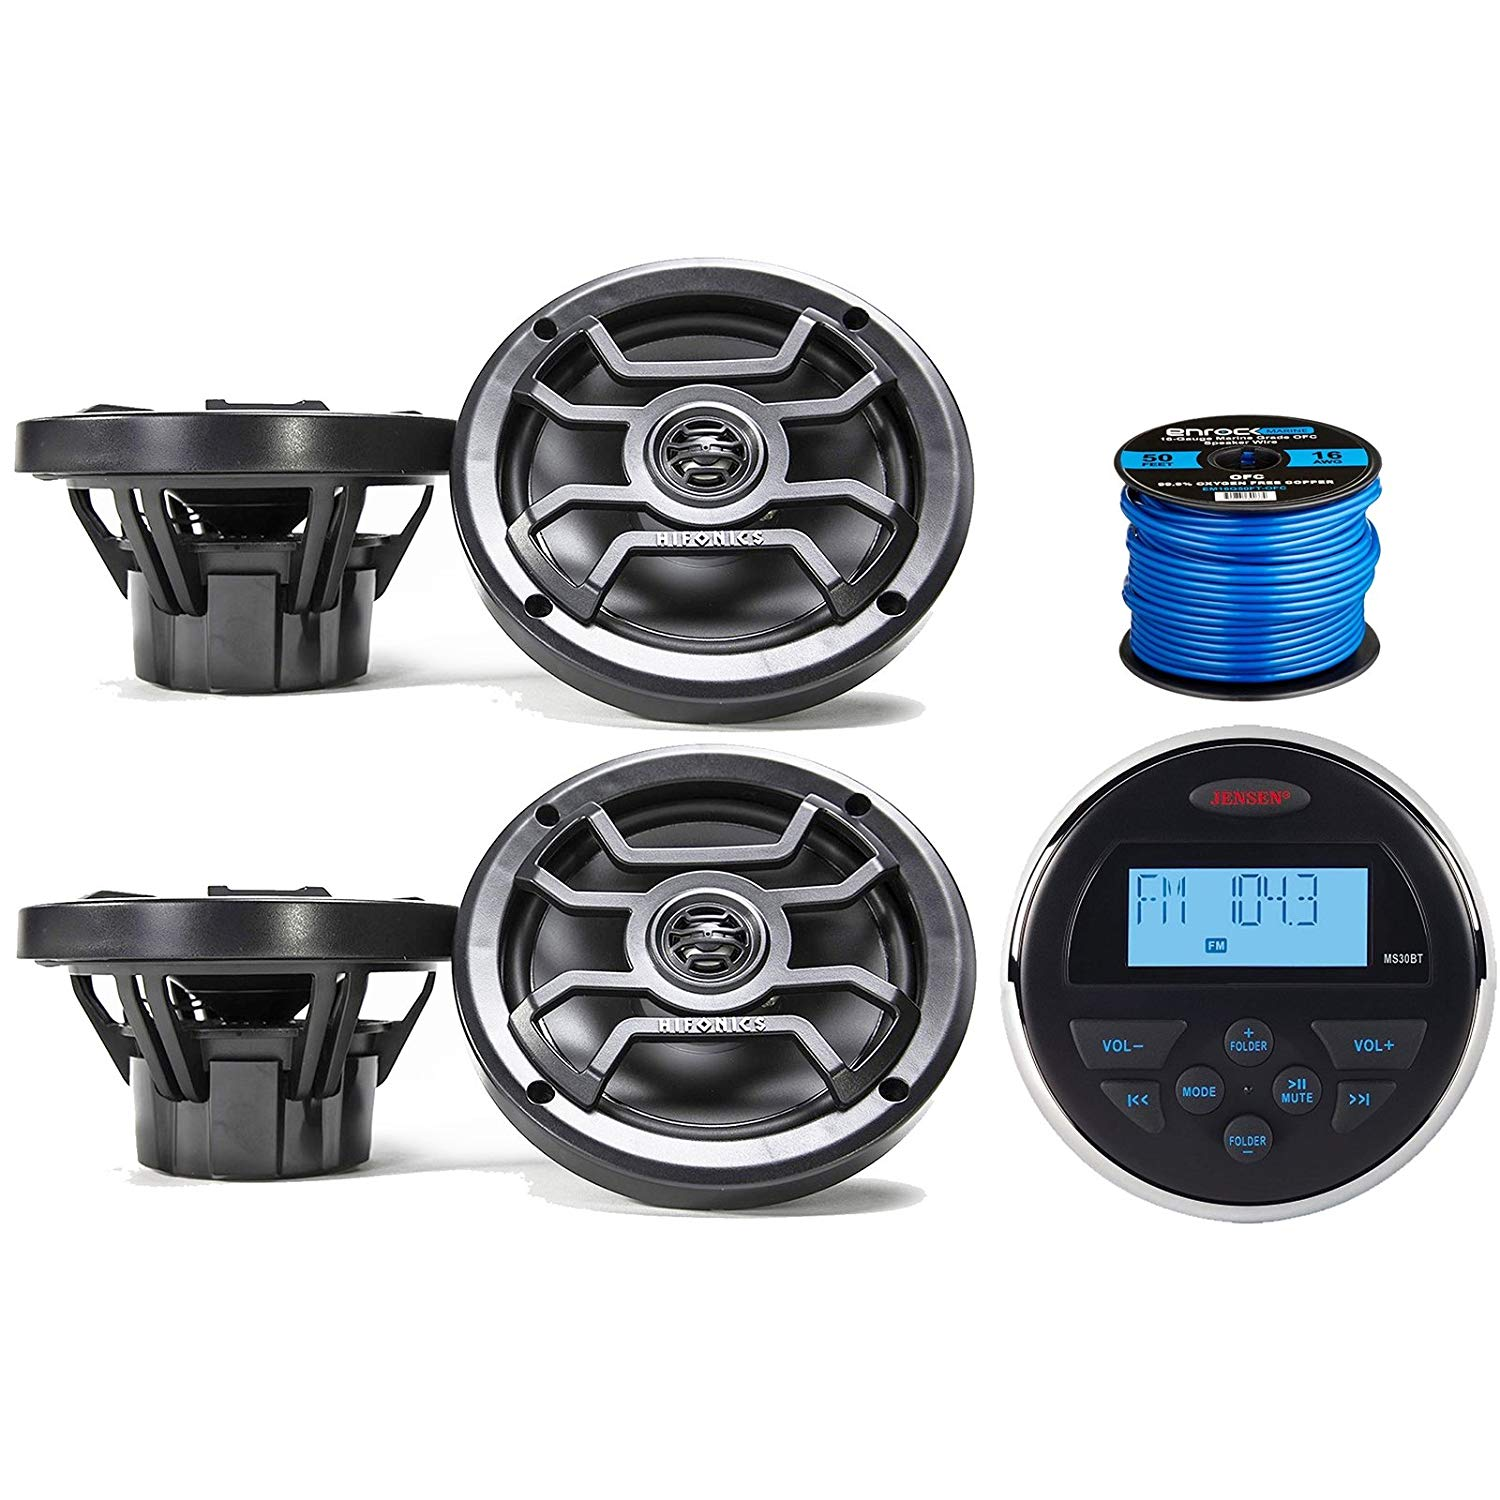 "Jensen MS-30BTR Mechless Compact Waterproof Stereo w/Bluetooth & USB Inputs, 4 x Hifonics 6.5"" Marine 2-Way Speakers w/Grills (Black), Enrock Marine-Grade 50 Foot 16-Gauge Speaker Wire"